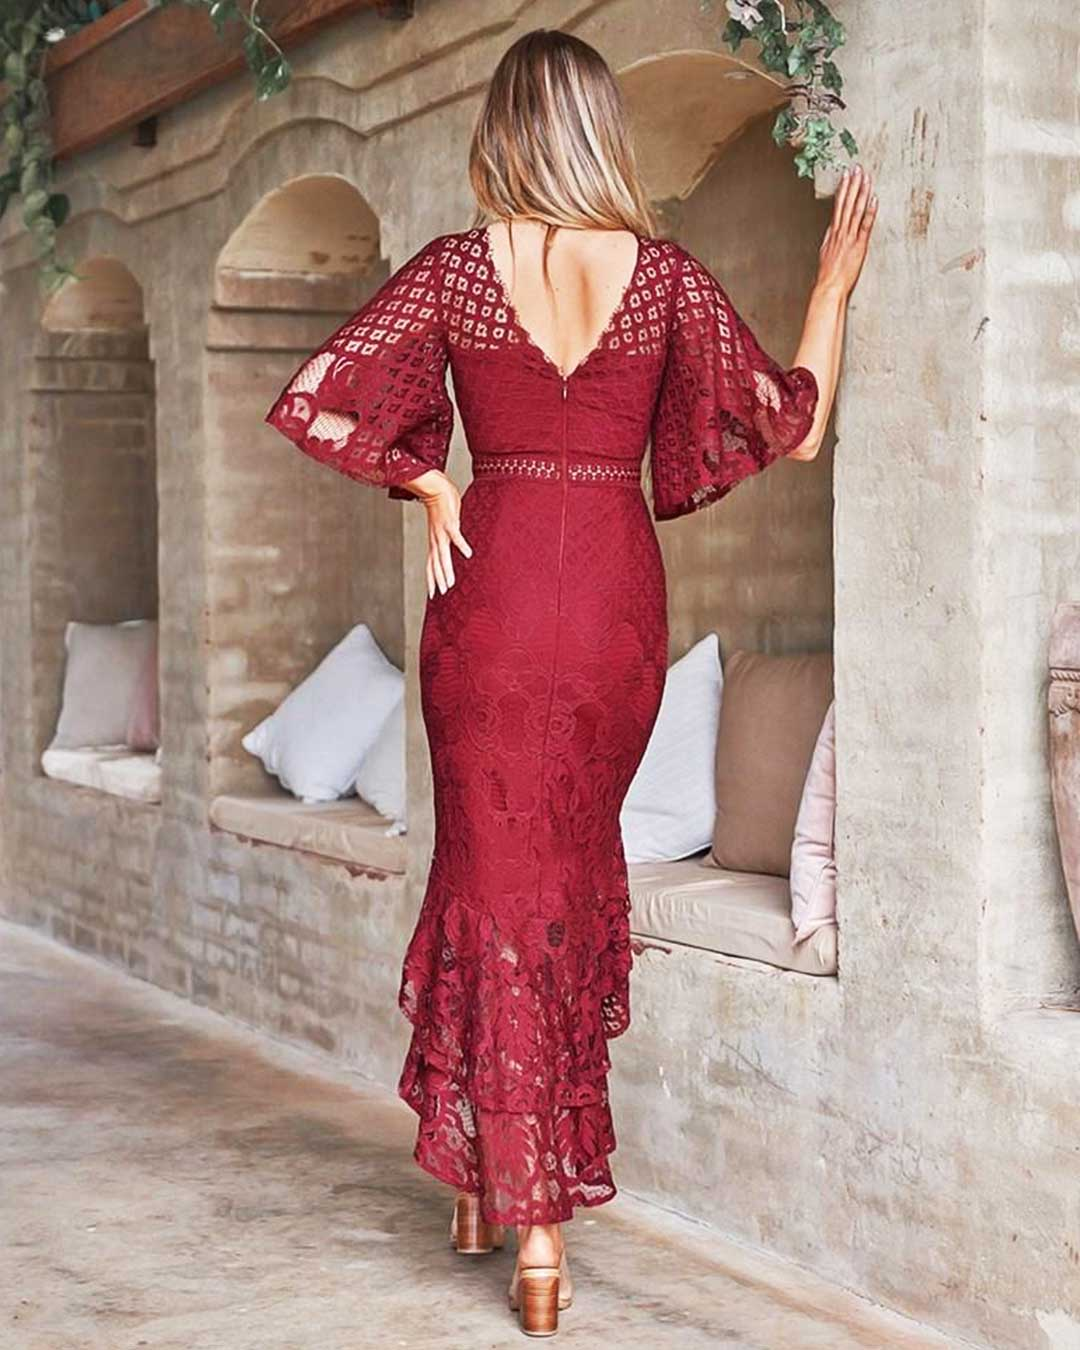 Reyna Lace Midi Dress - Red [PRE-ORDER]